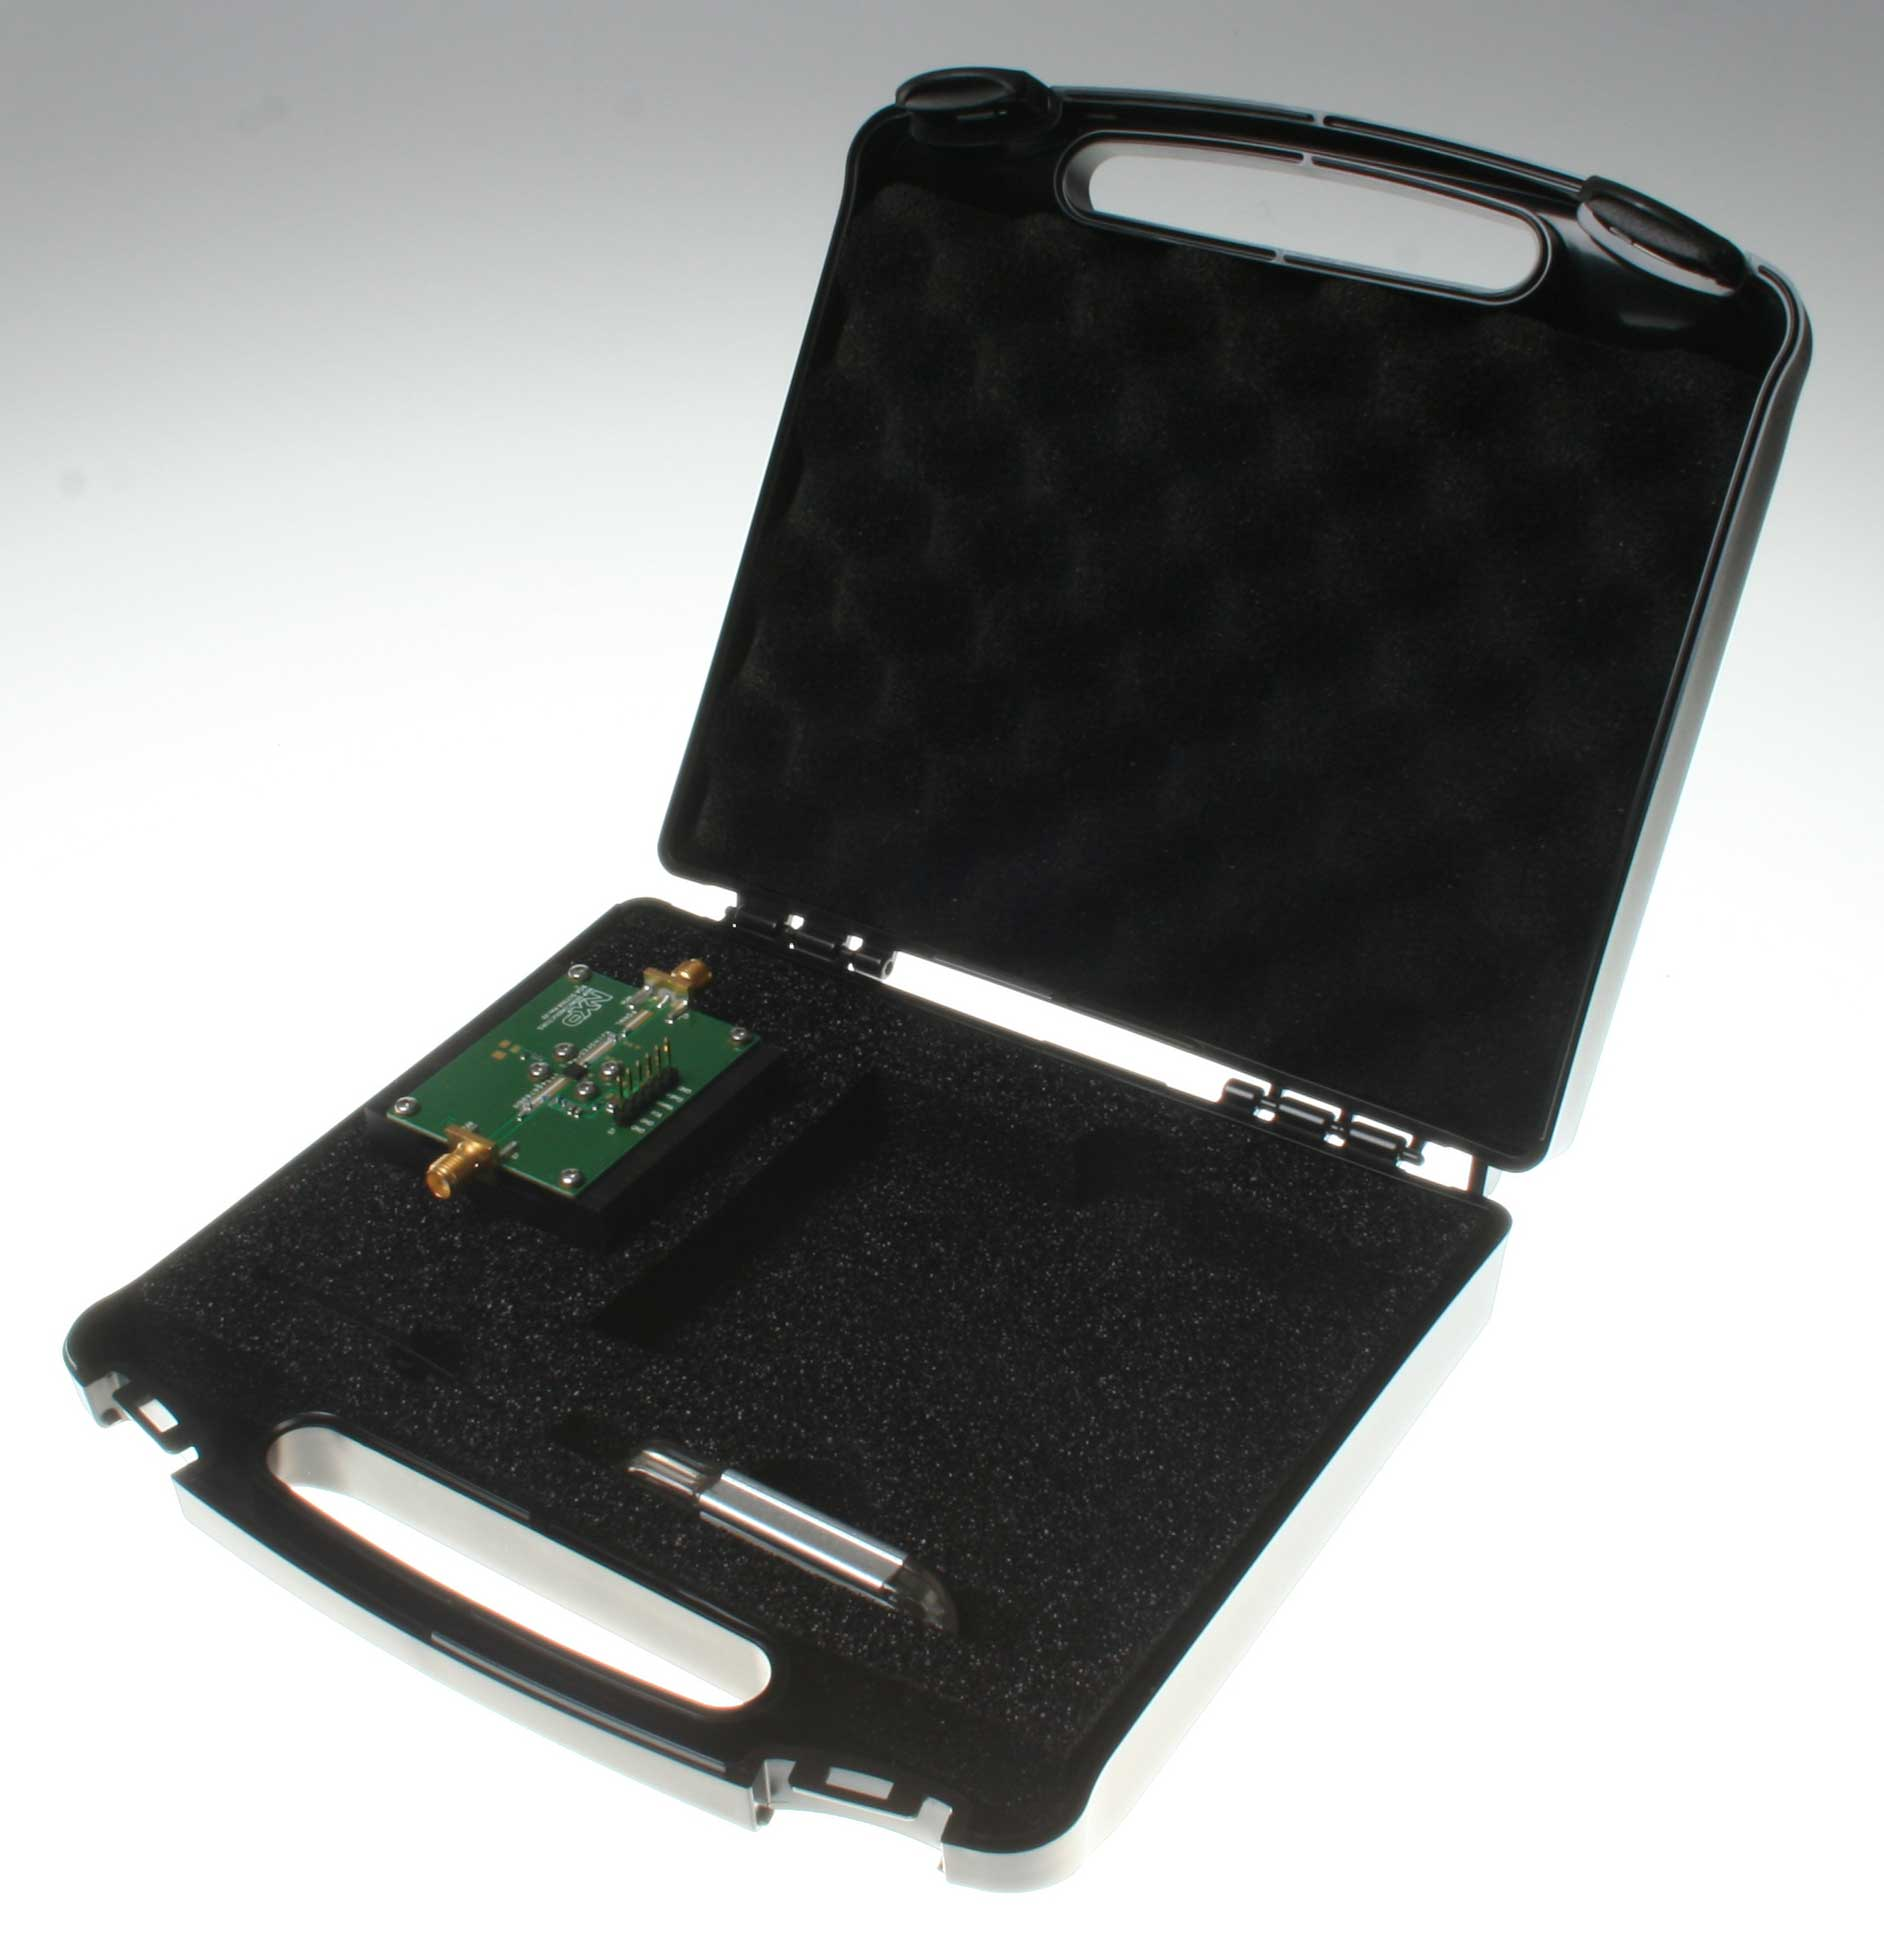 BGA7130 medium power amplifier evaluation kit